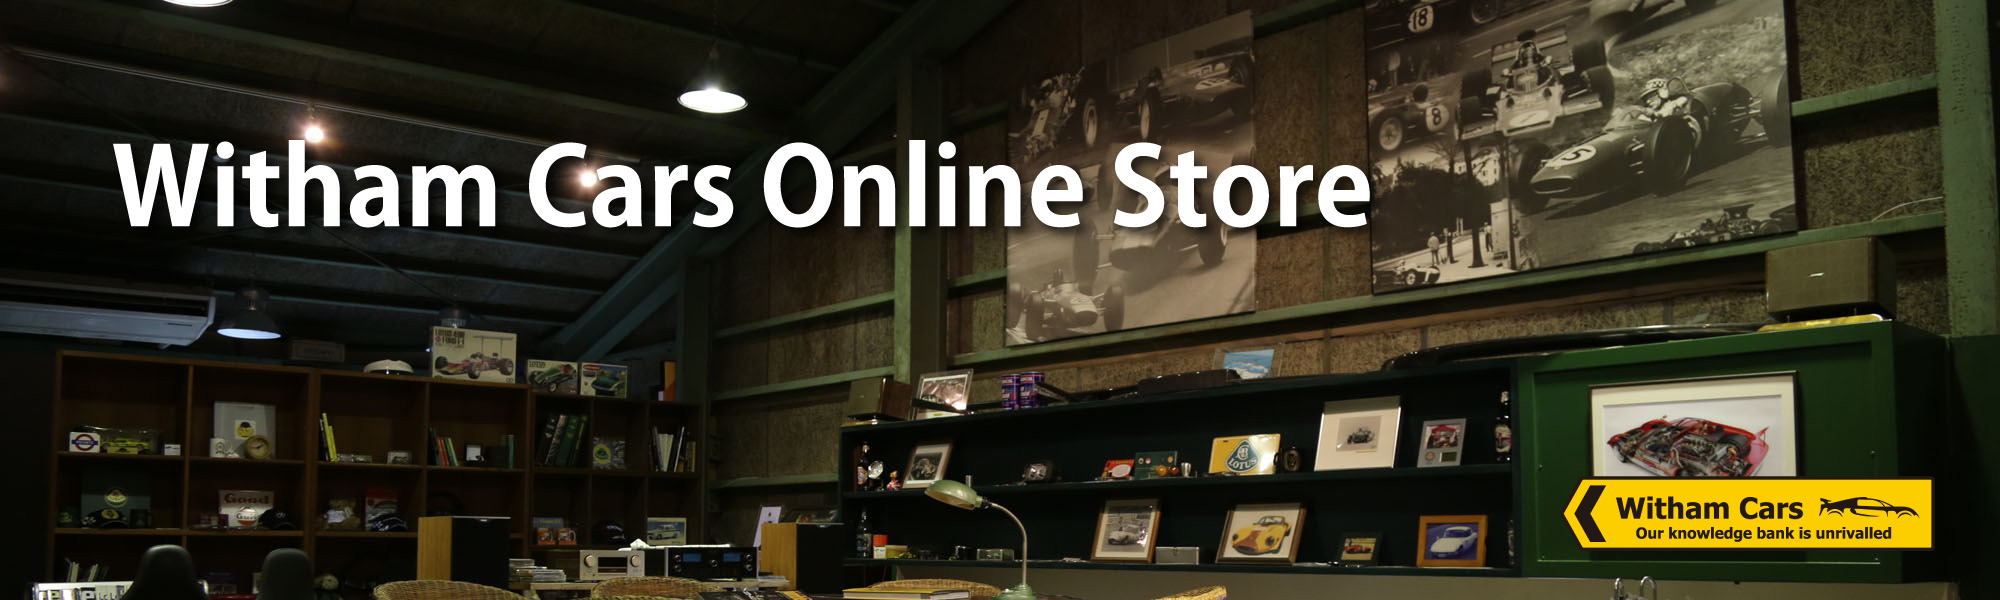 Witham Cars Online Store